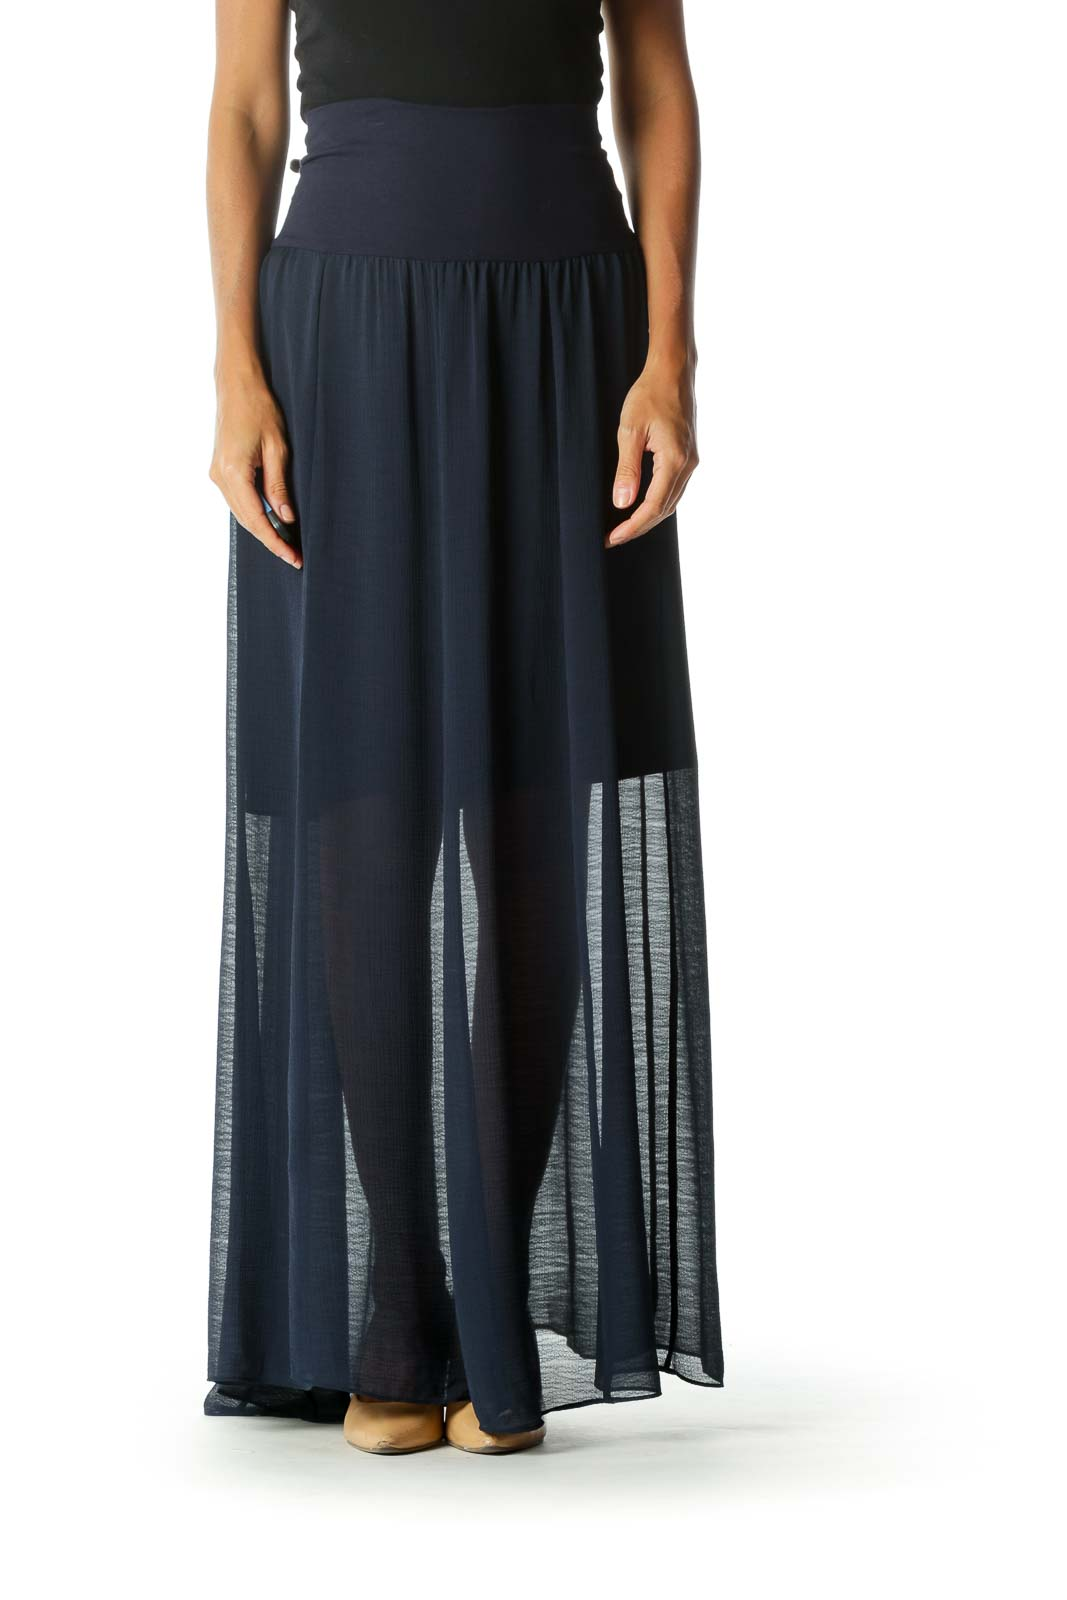 Navy Blue Translucent Stretch Maxi Skirt